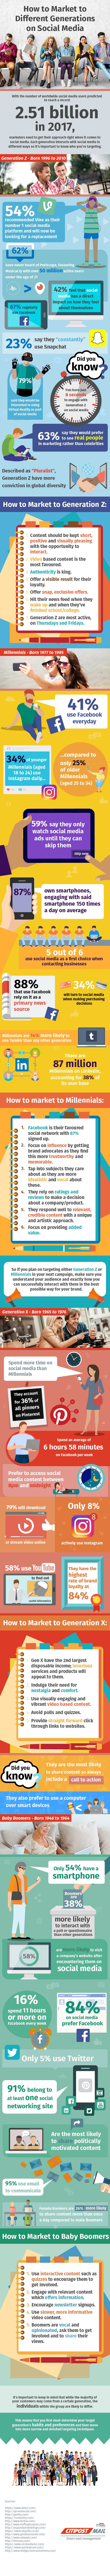 How to Market Your Business to Different Generations on Social Media [Infographic]